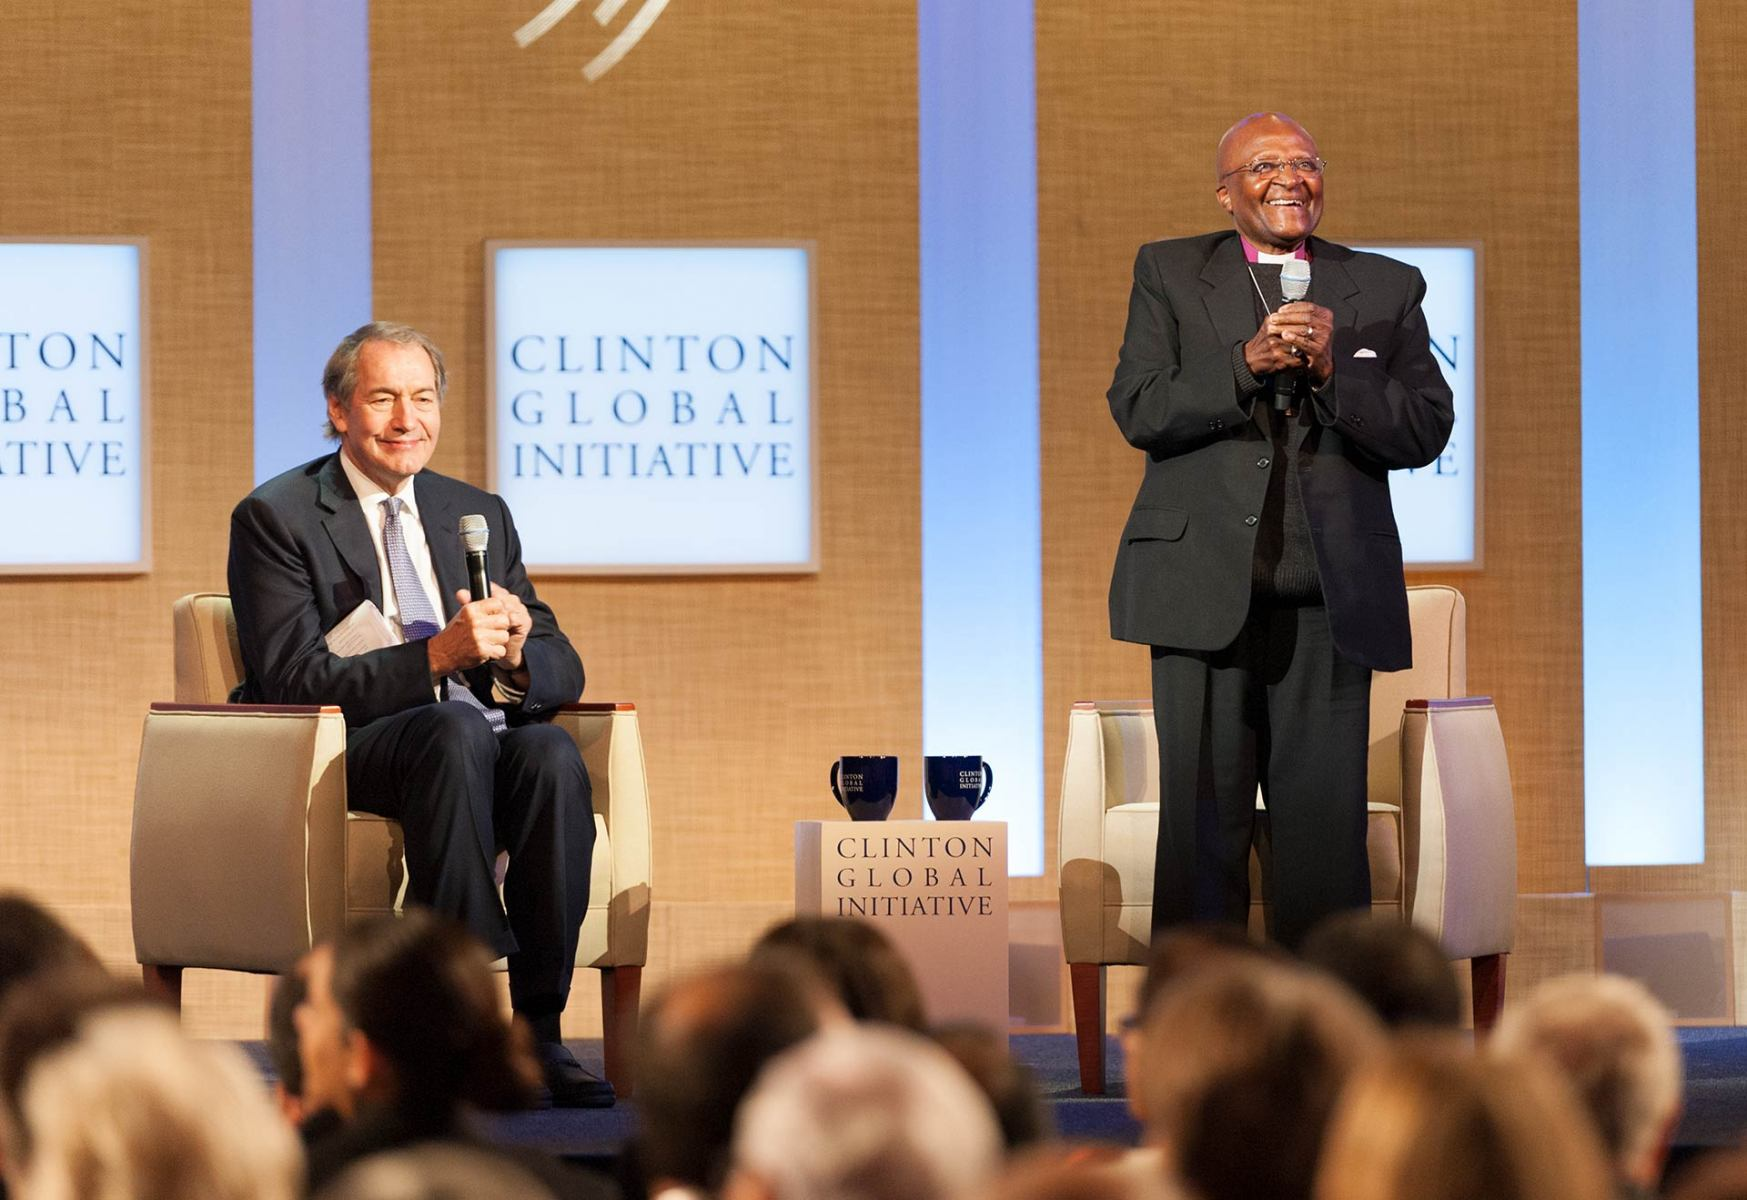 Clinton Global Initiative 2011; Conversations on Courage - Humanitarian Leadership in Action; Charlie Rose; Archbishop Desmond M. Tutu; Aung San Suu Ky; 09-210-201